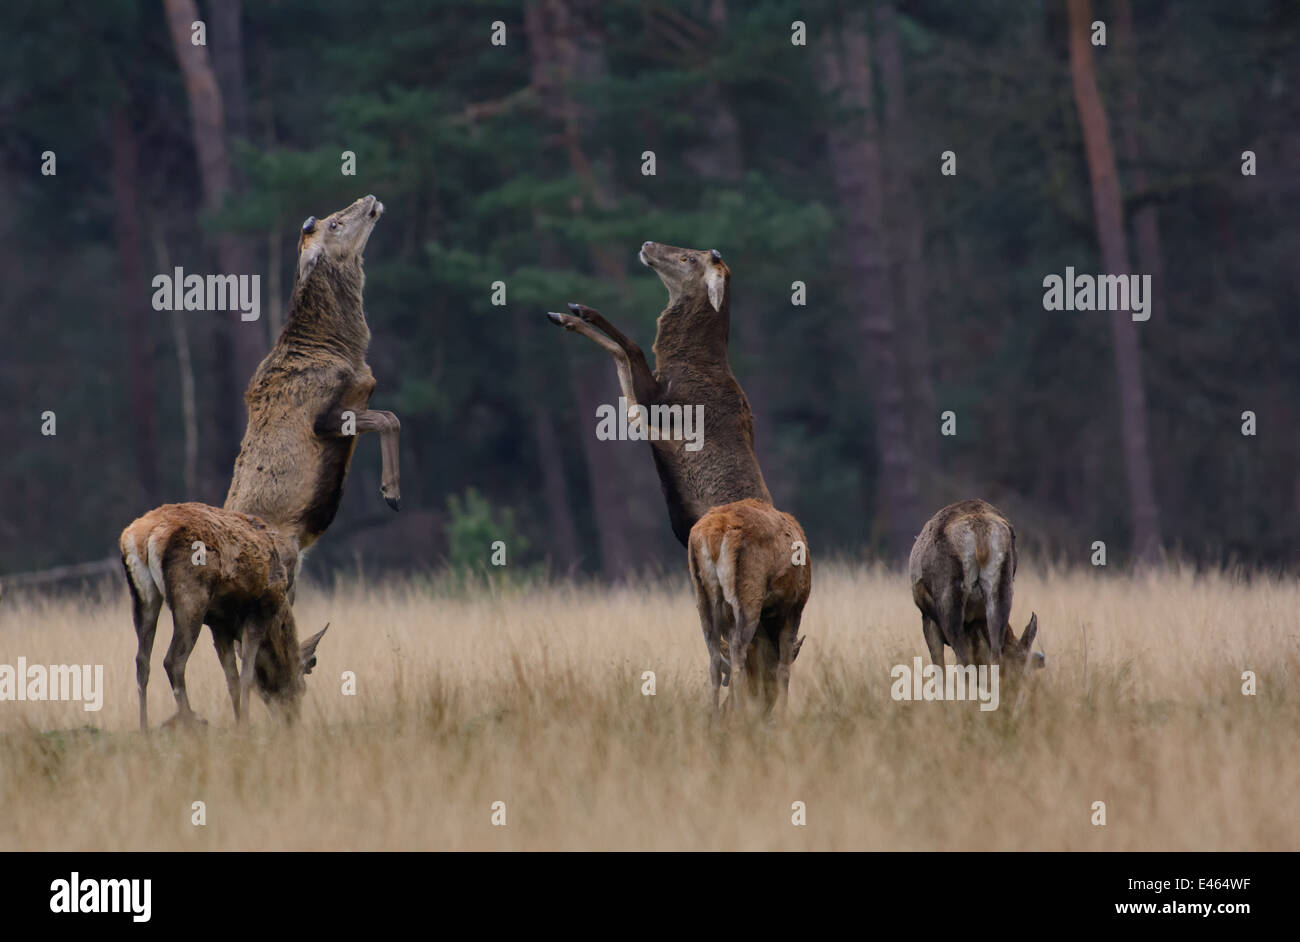 Red deer stags fight with their front legs when the new antlers grow on their heads - Stock Image